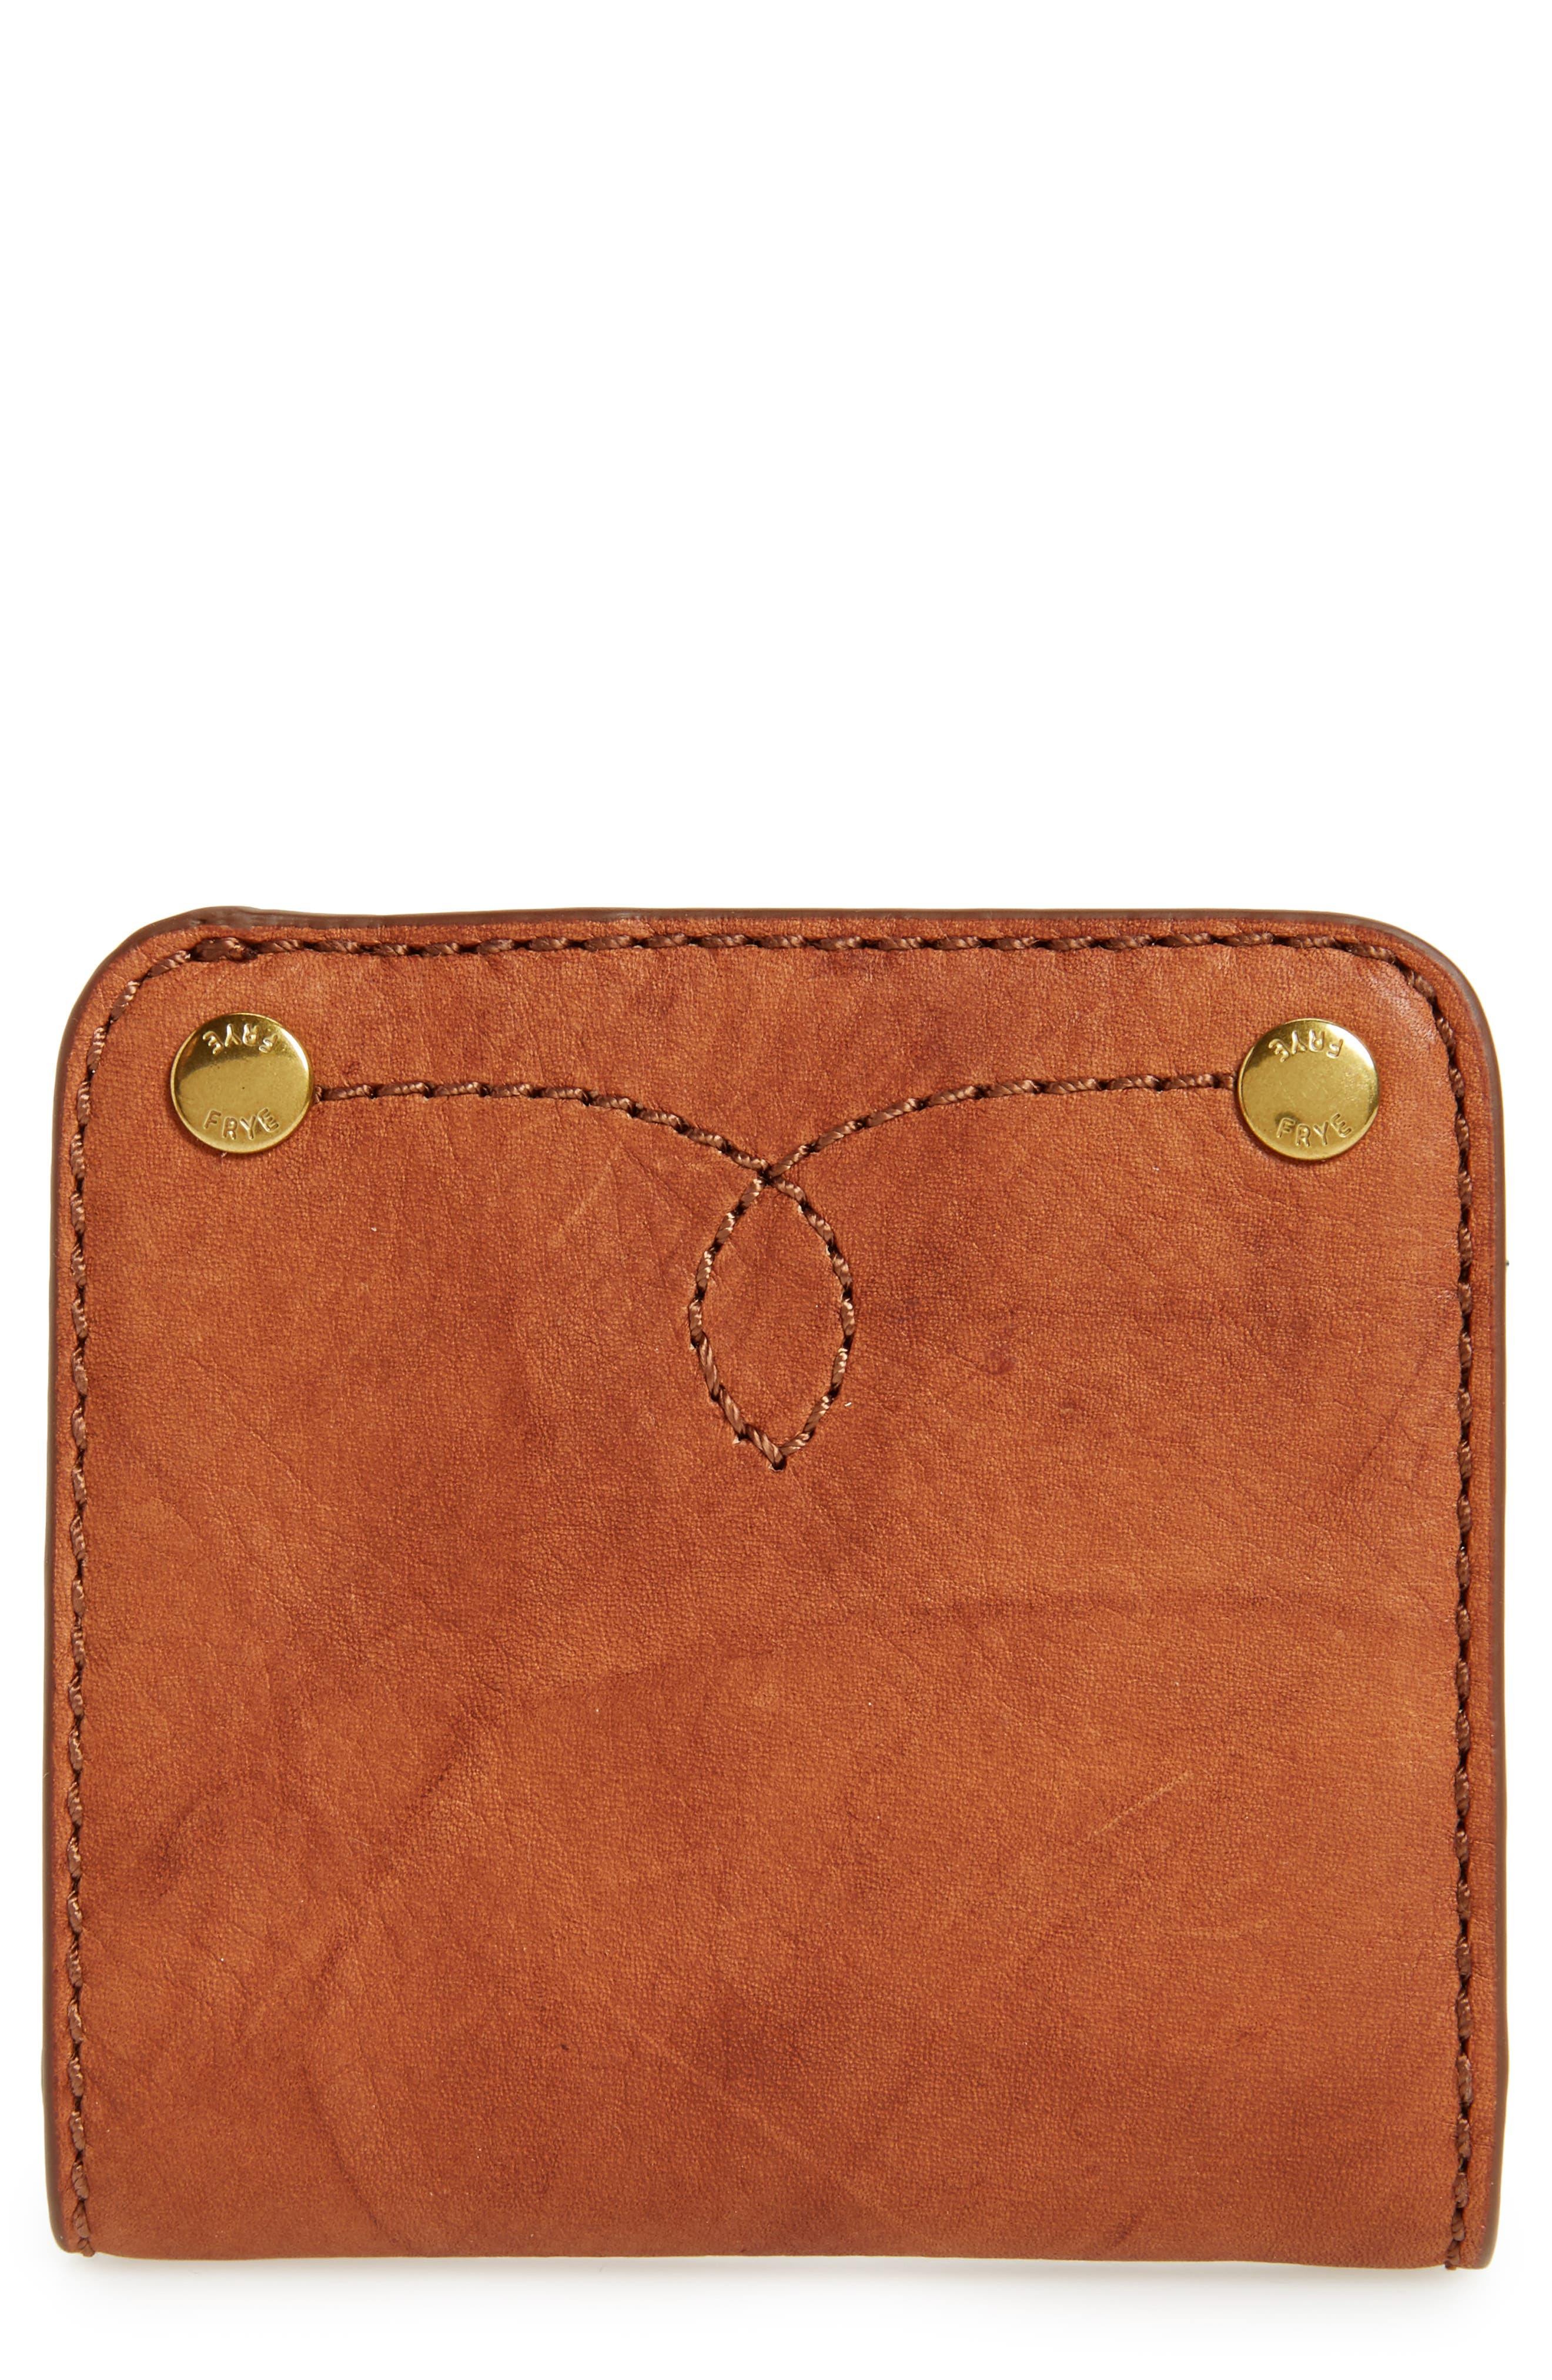 Small Campus Rivet Leather Wallet,                             Main thumbnail 1, color,                             Saddle